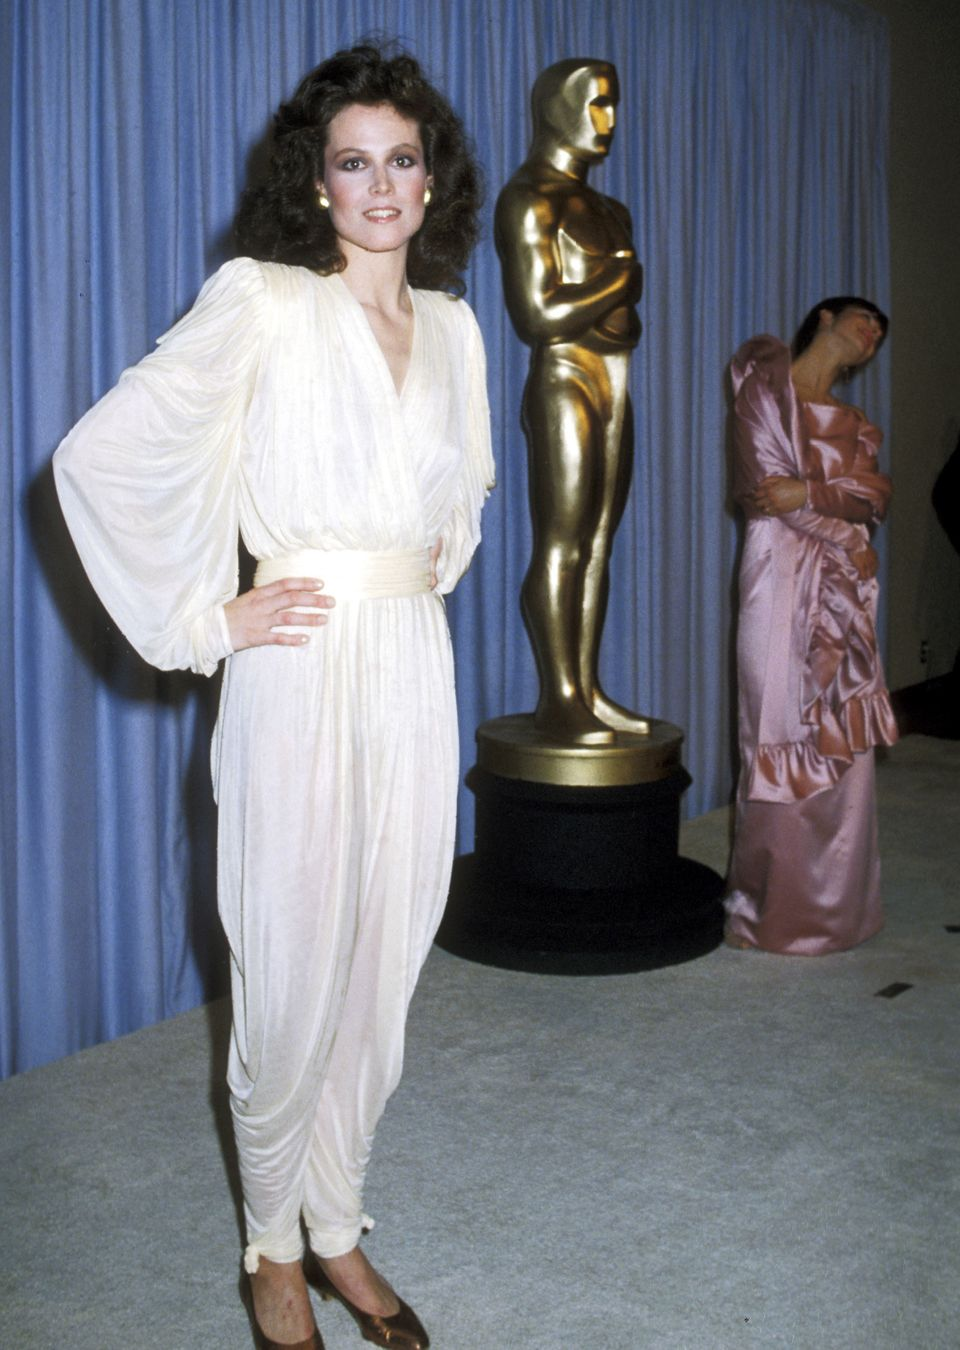 Sigourney Weaver at the Oscars in